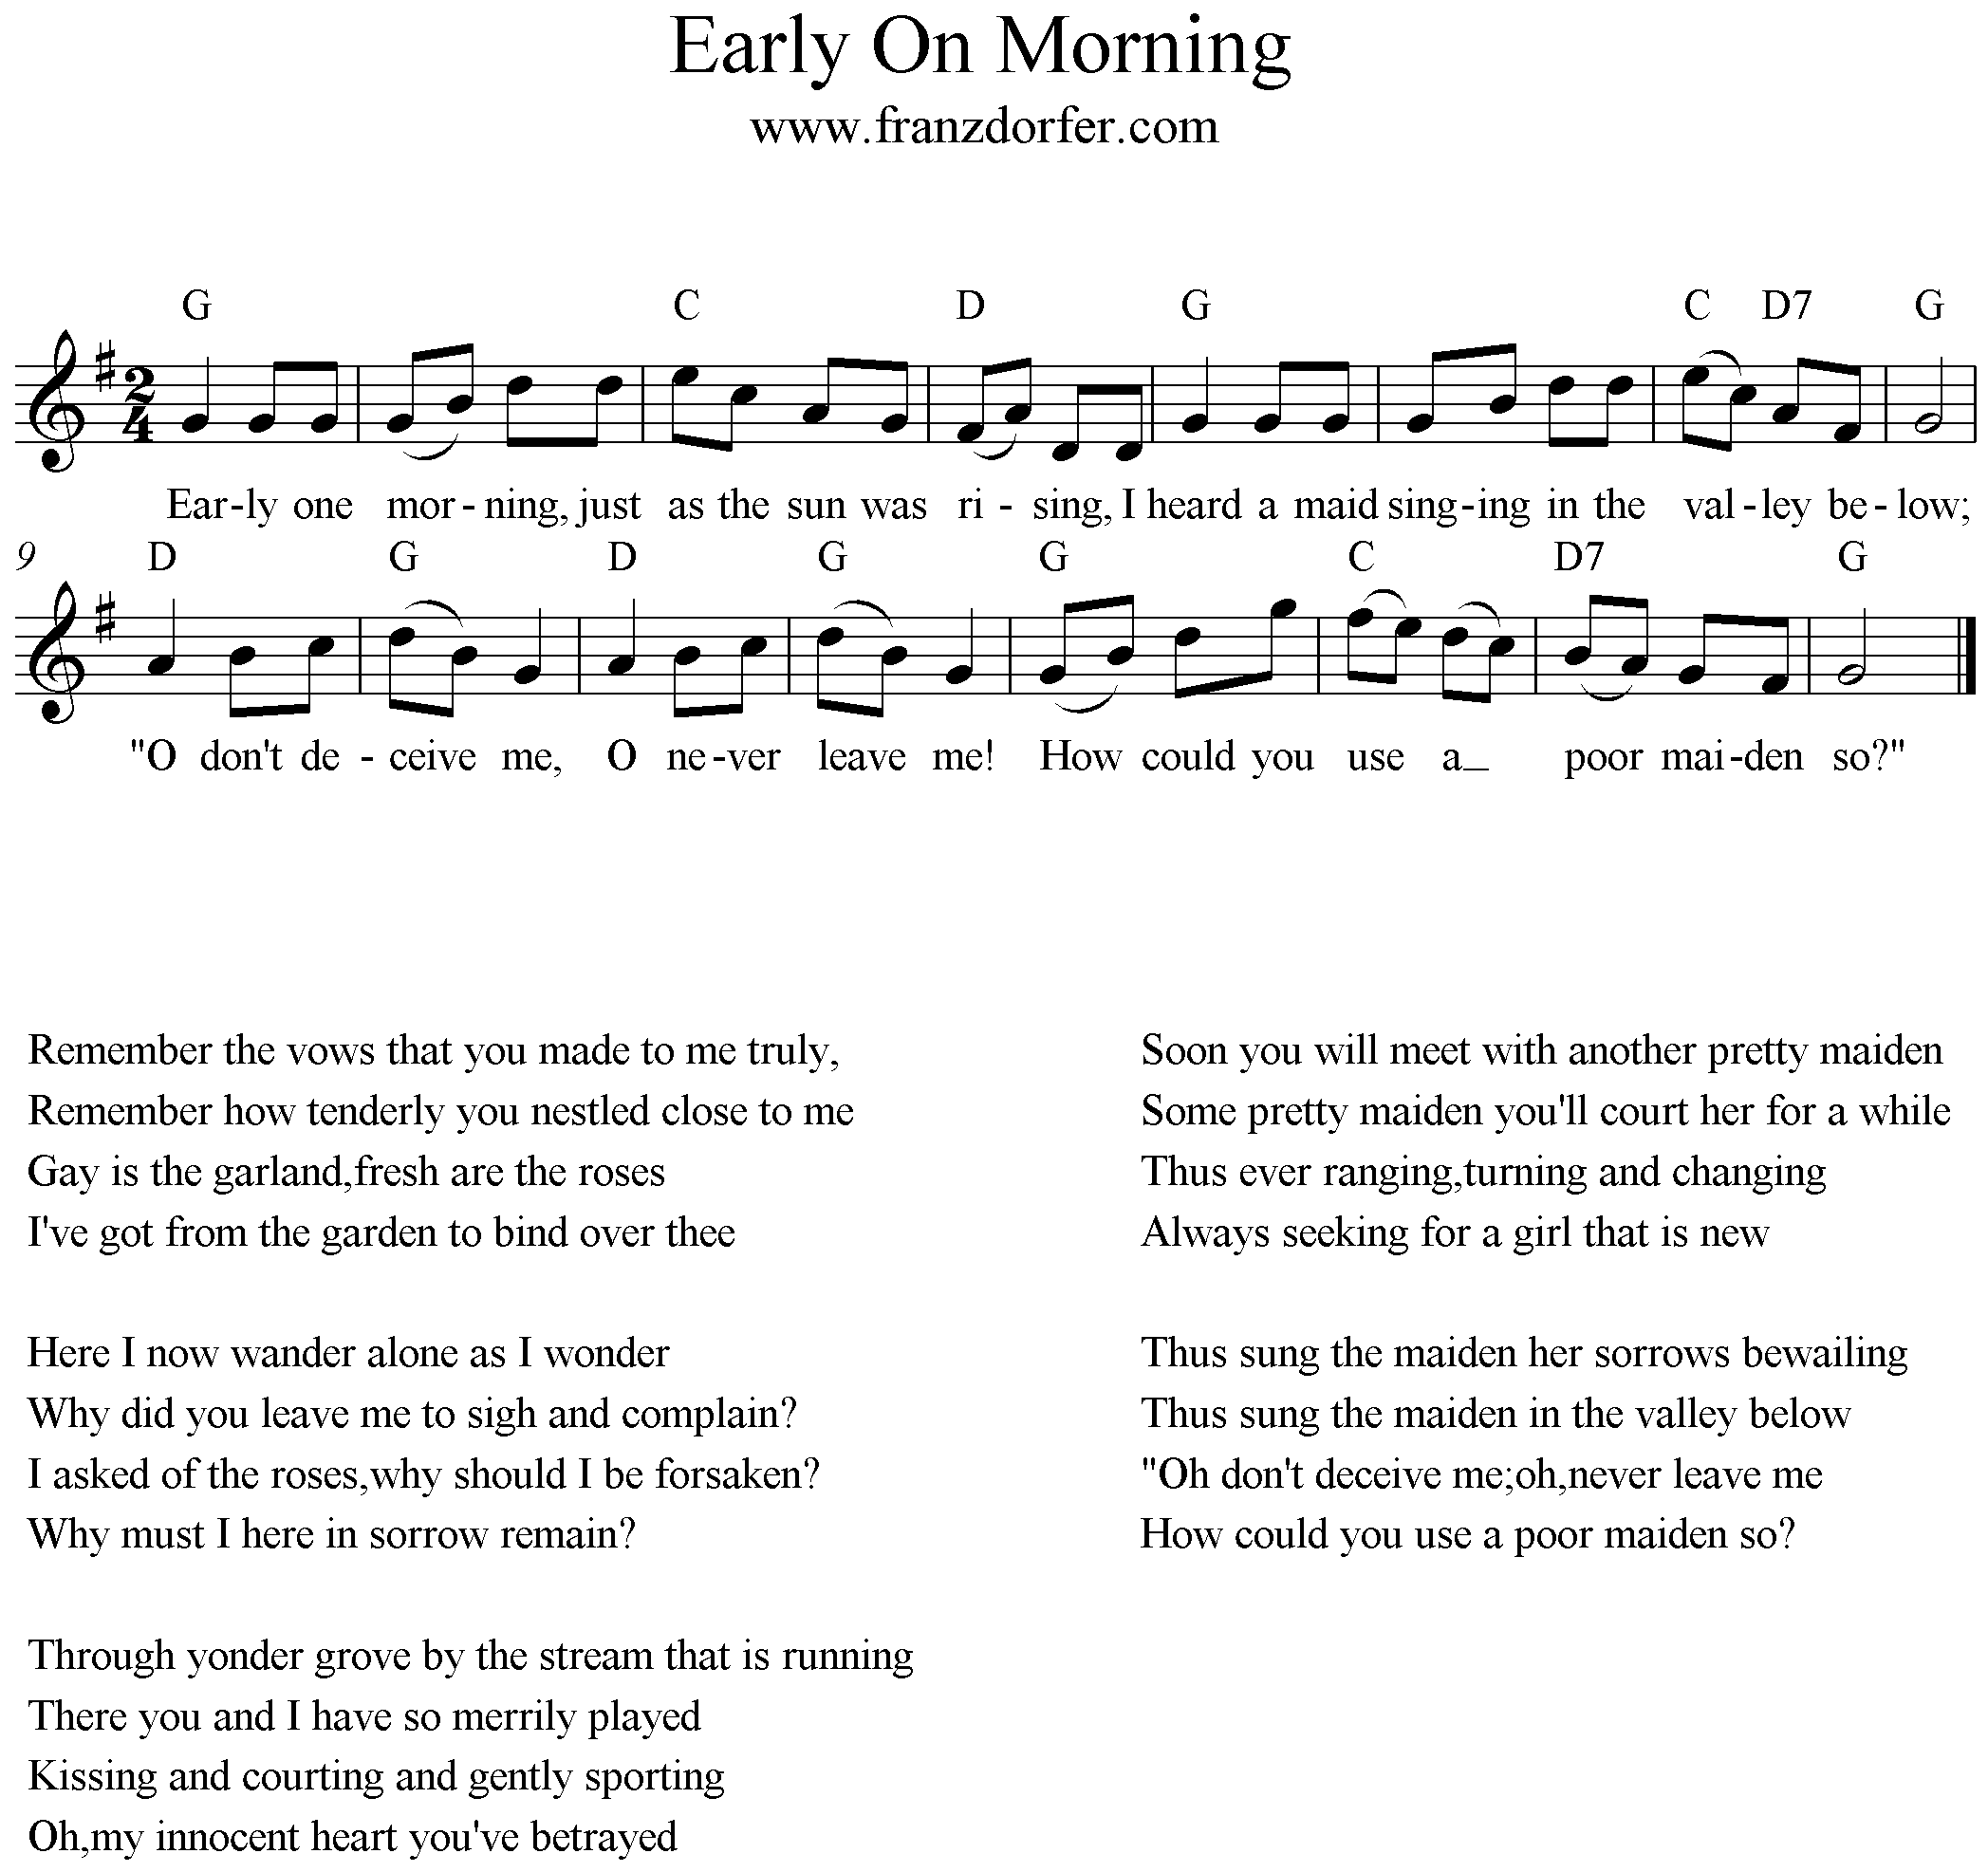 Early One Morning G-Major Noten